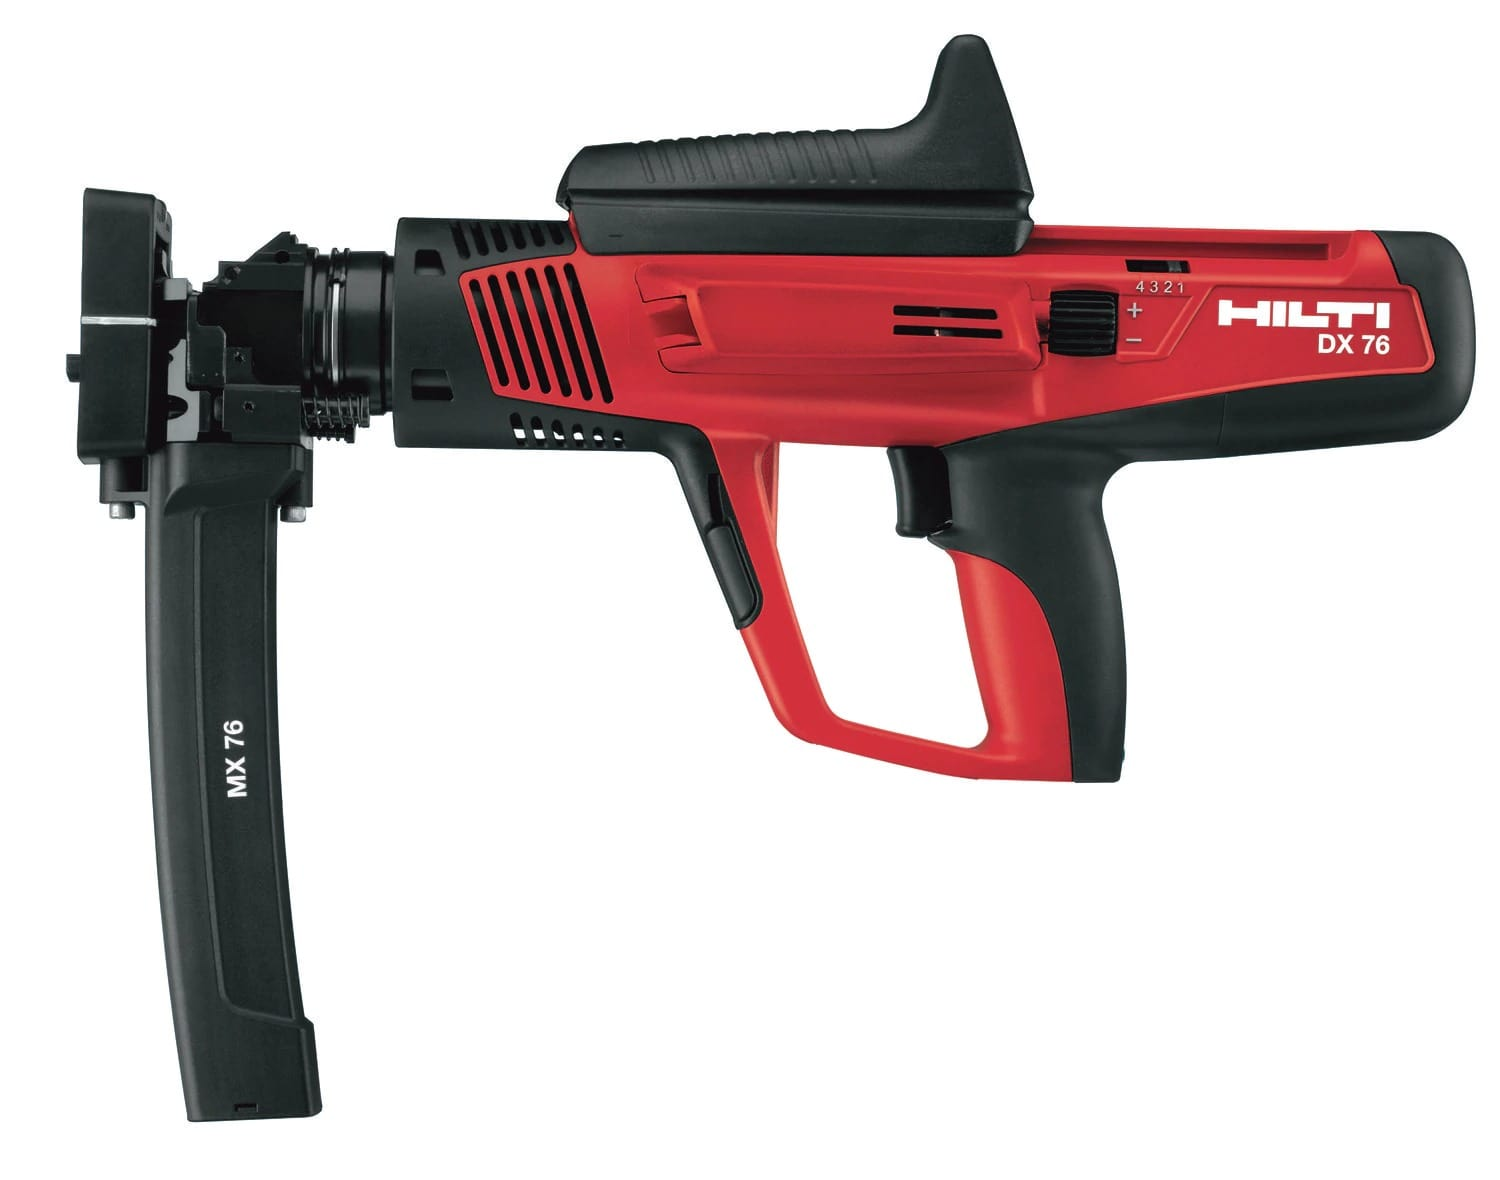 Hilti DX76 Powder-actuated Tool 1.2Kg